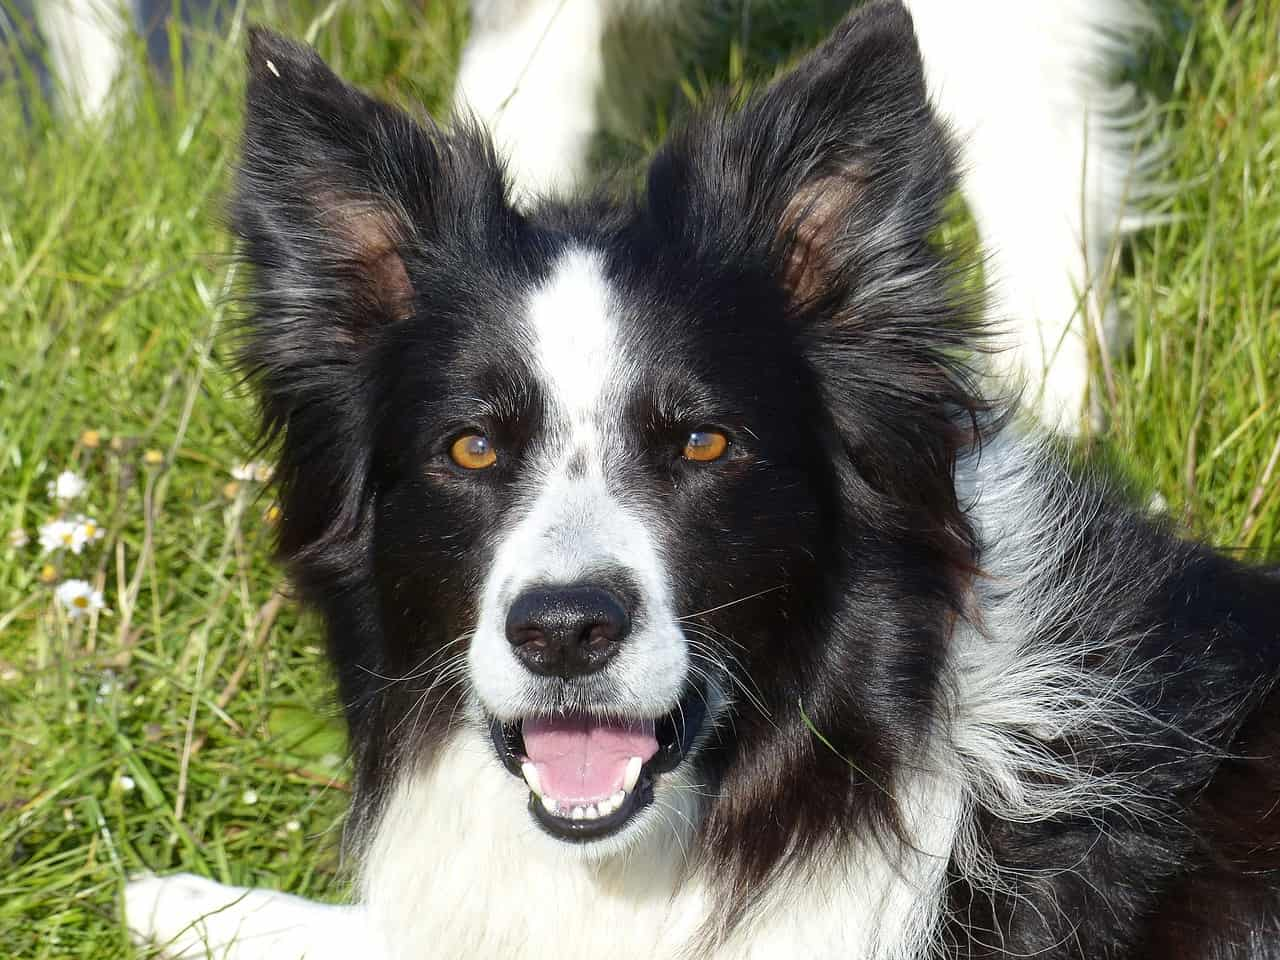 A close-up photo of a black and white Border Collie